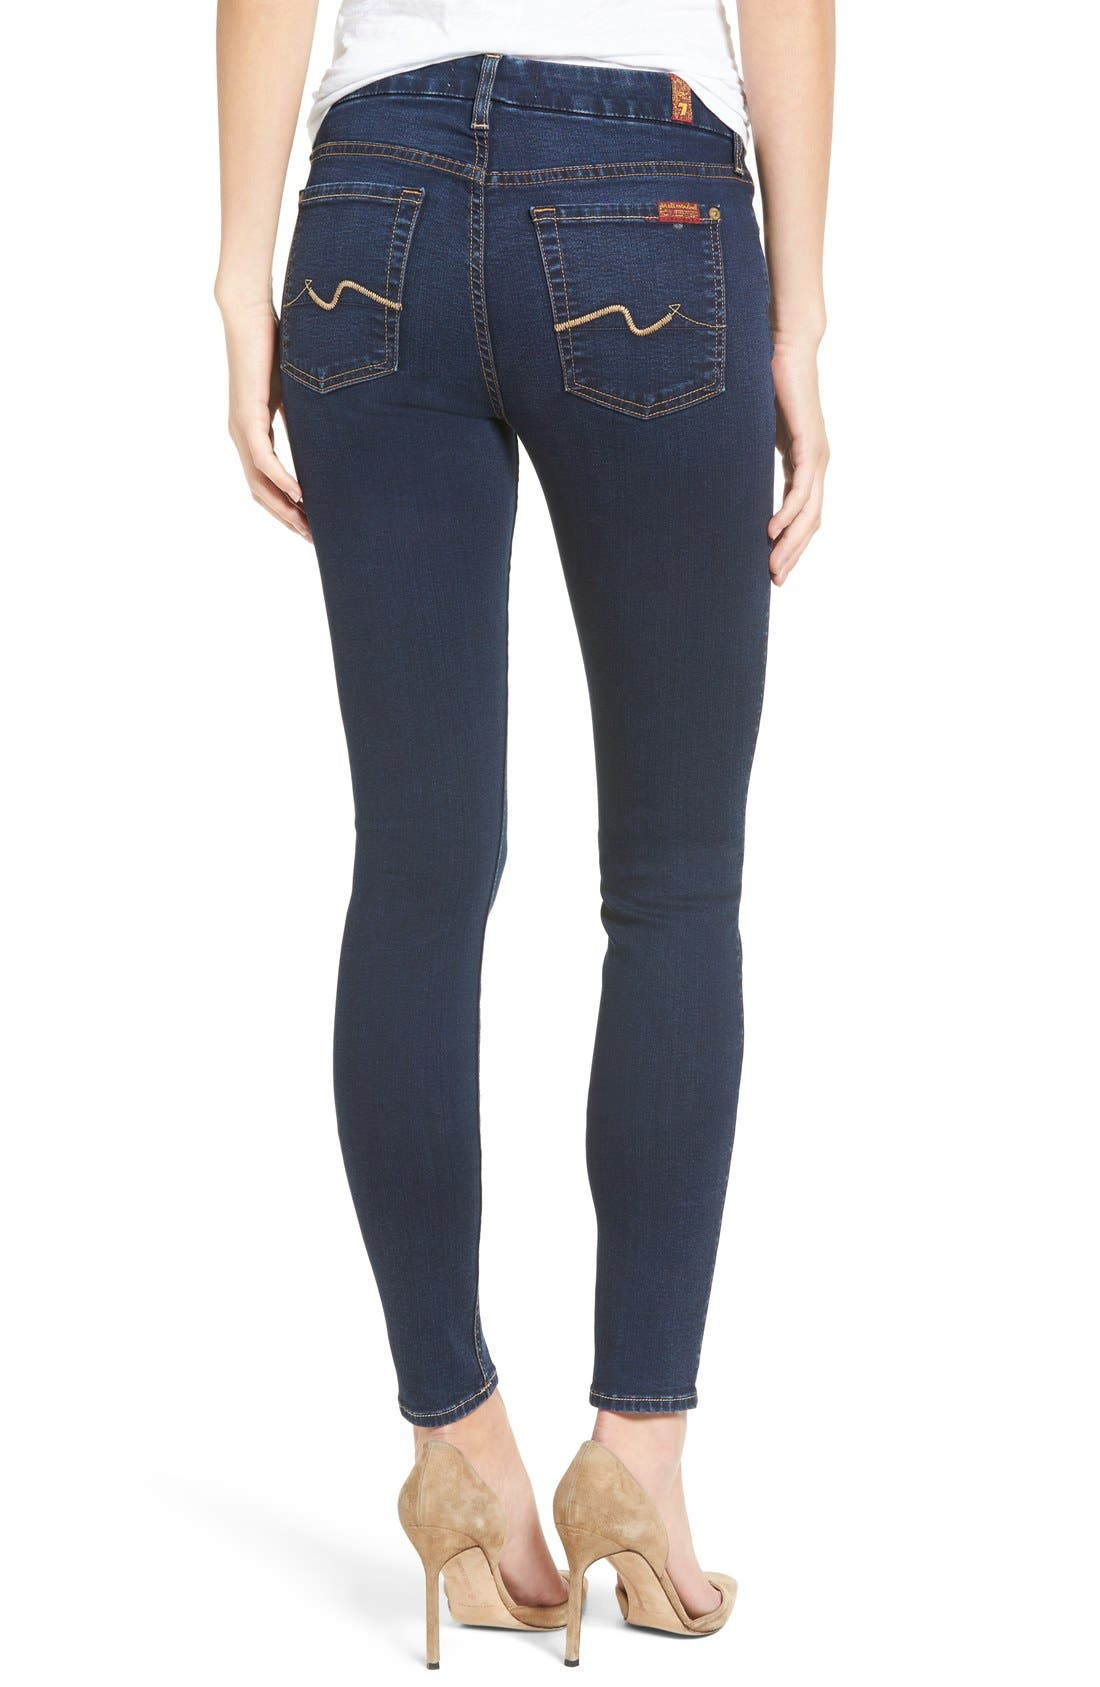 b(air) Skinny Jeans,                             Alternate thumbnail 2, color,                             Bair Tranquil Blue